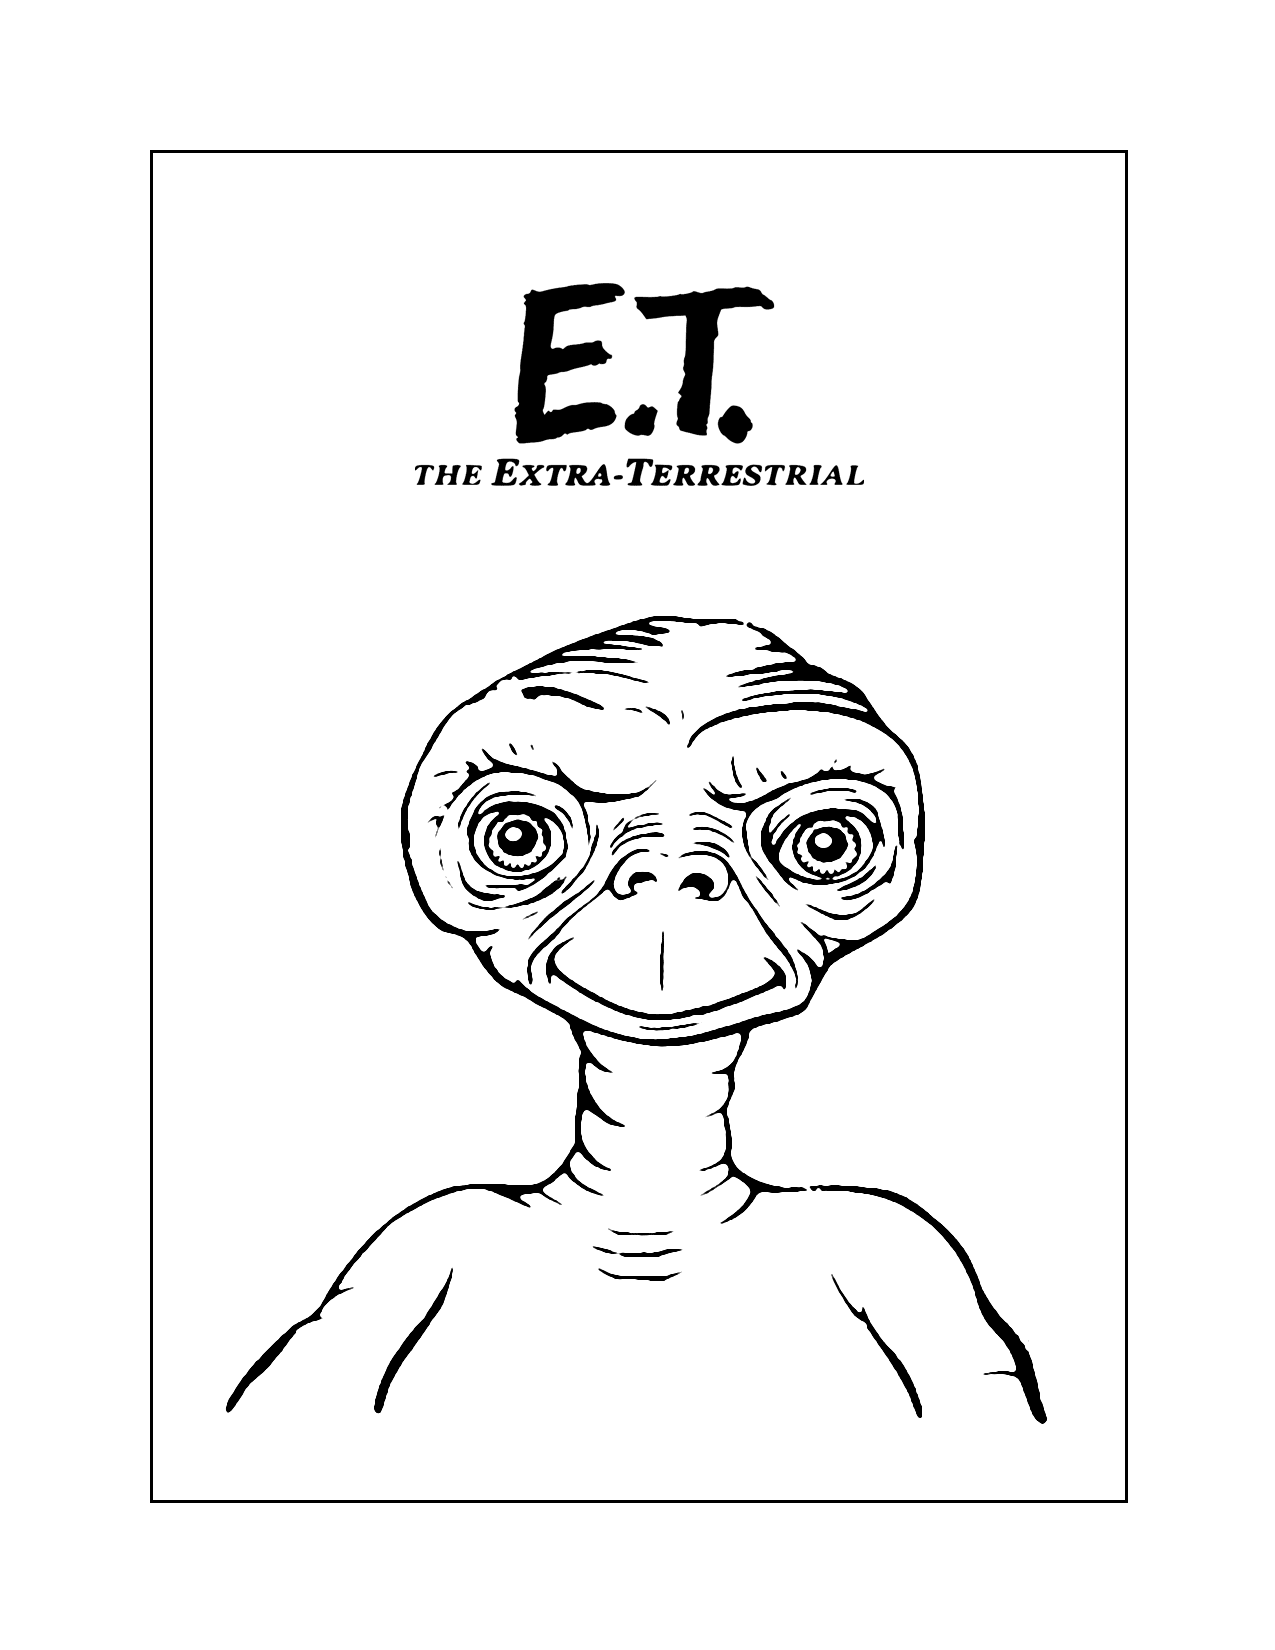 E.t. Movie Coloring Pages